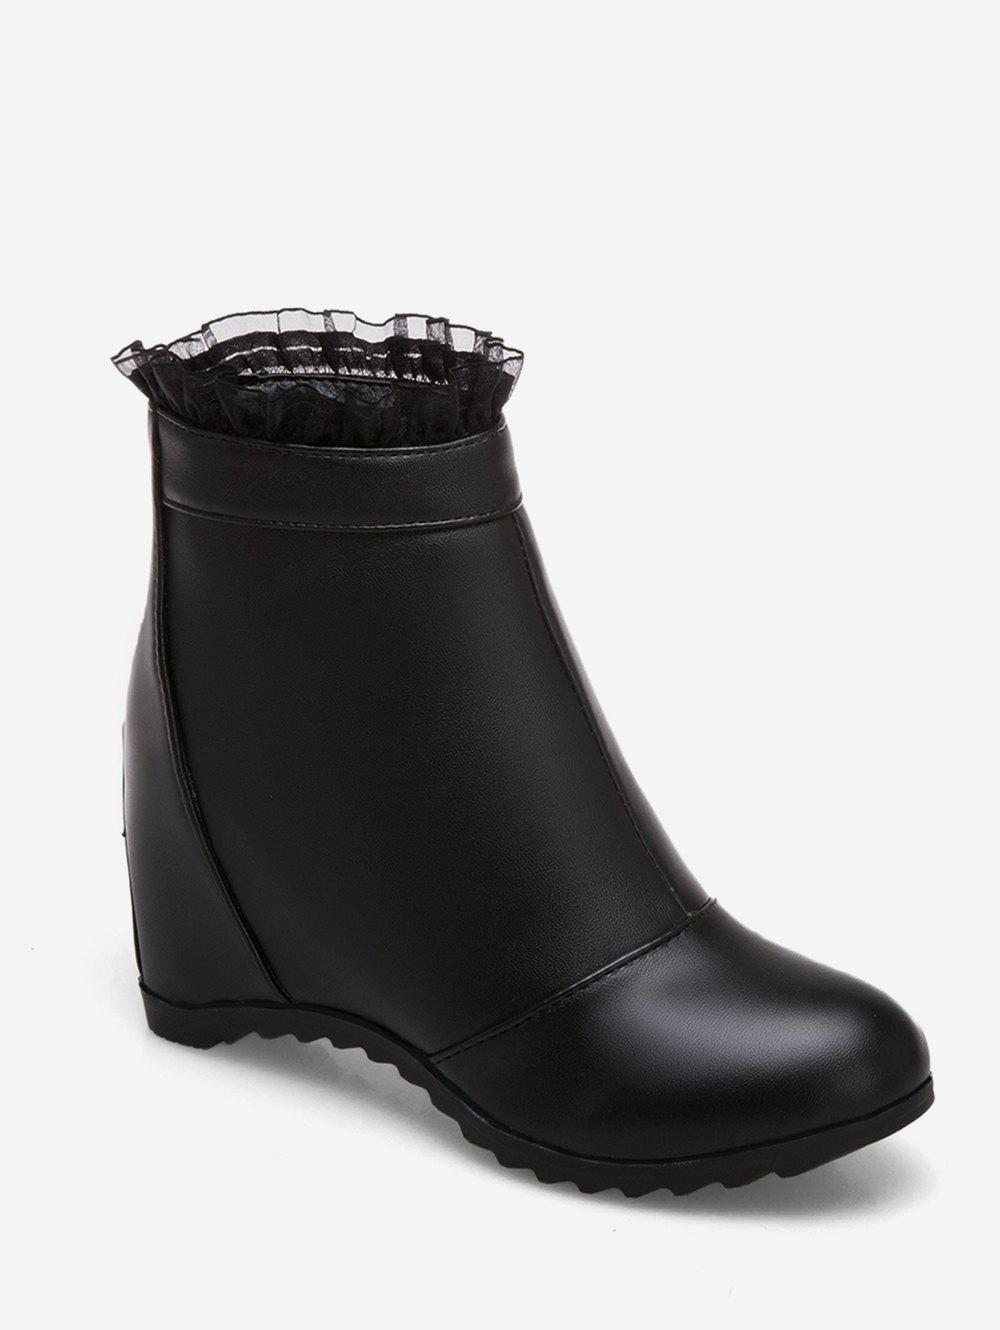 New Plus Size Increased Internal Flounced Ankle Boots